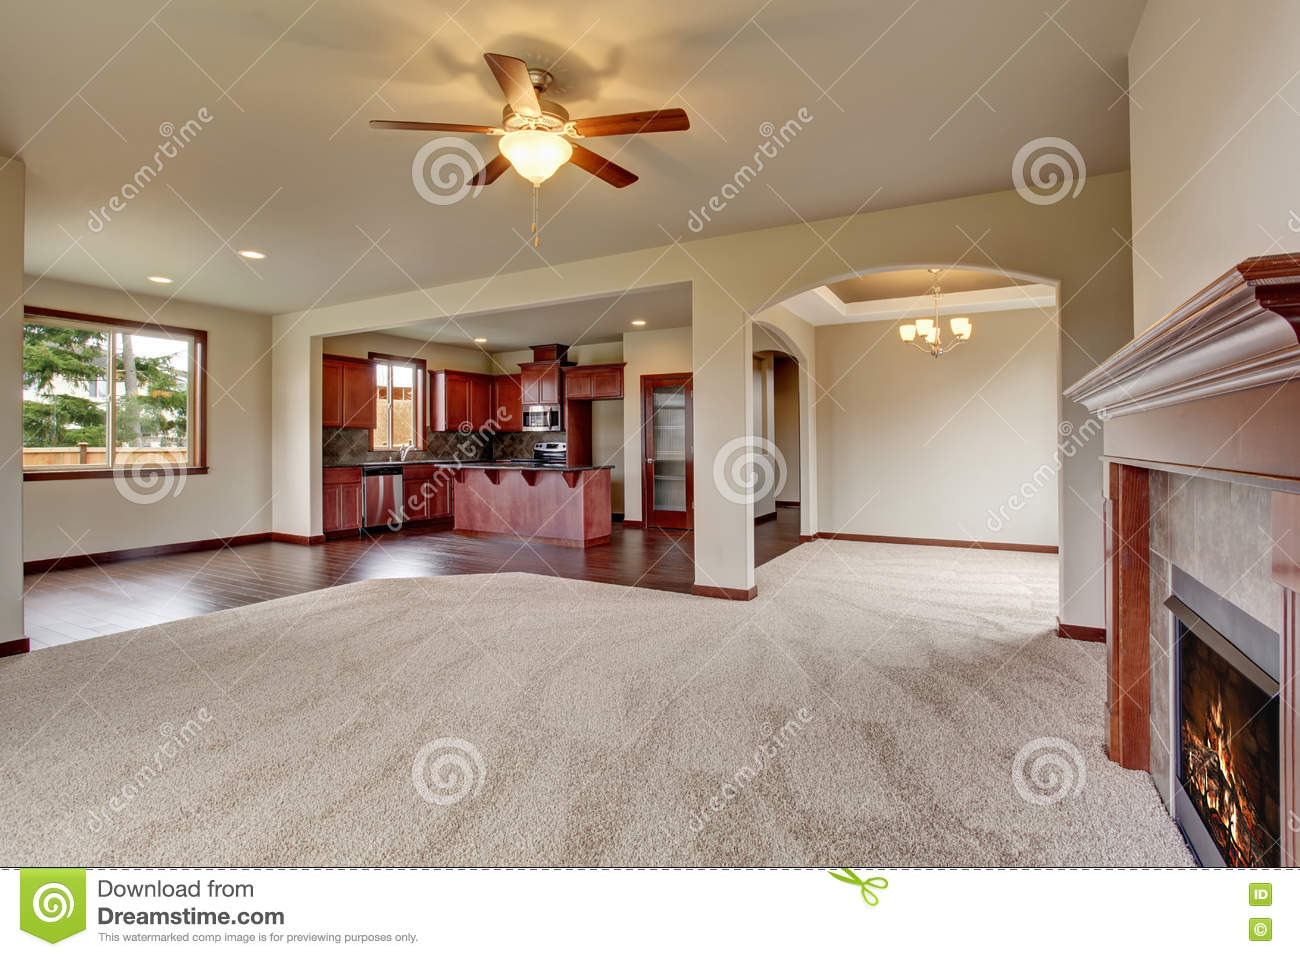 open floor plan interior with carpet and fireplace stock photo floor